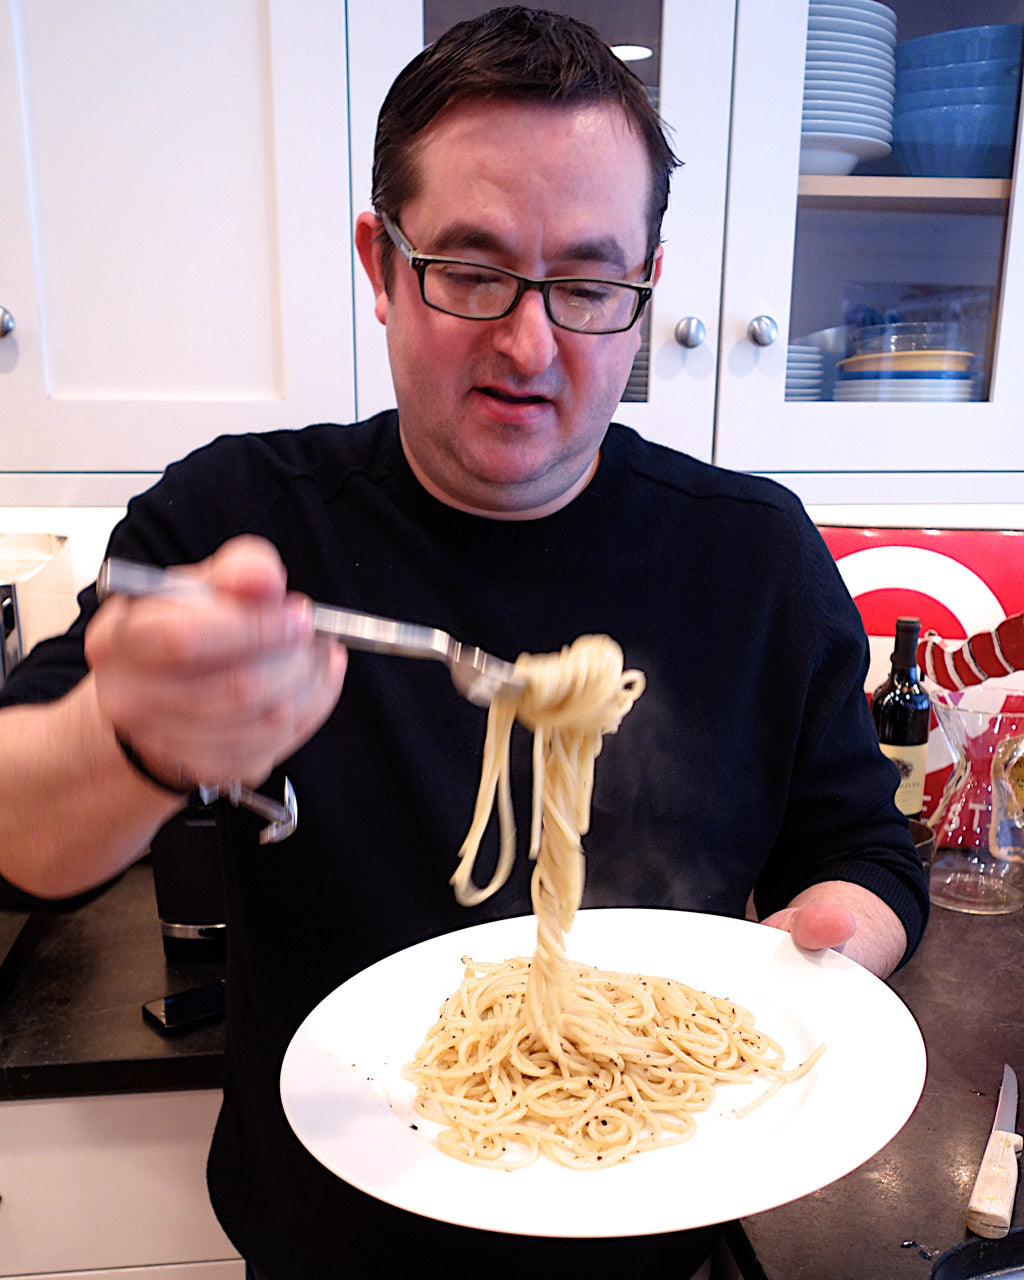 Chef Todd Stein enjoying Cacio e Pepe